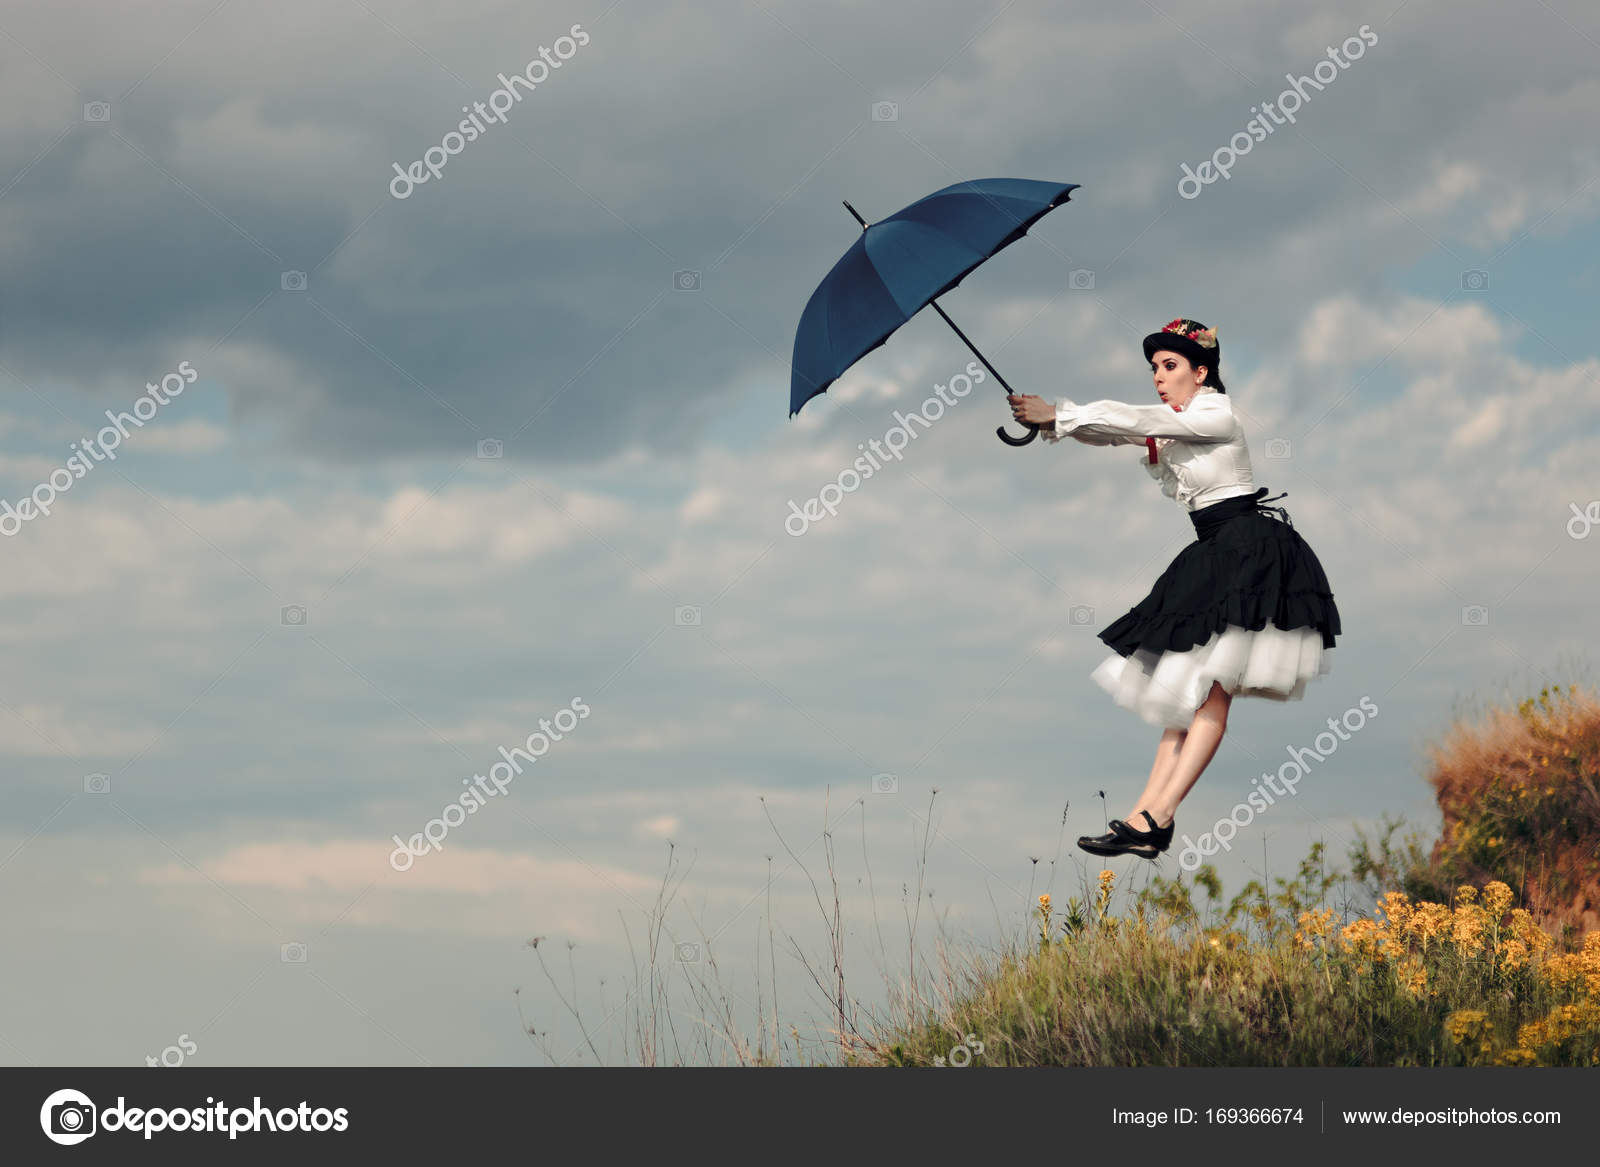 Retro Woman With Umbrella Up In The Air In Fantasy Portrait Stock